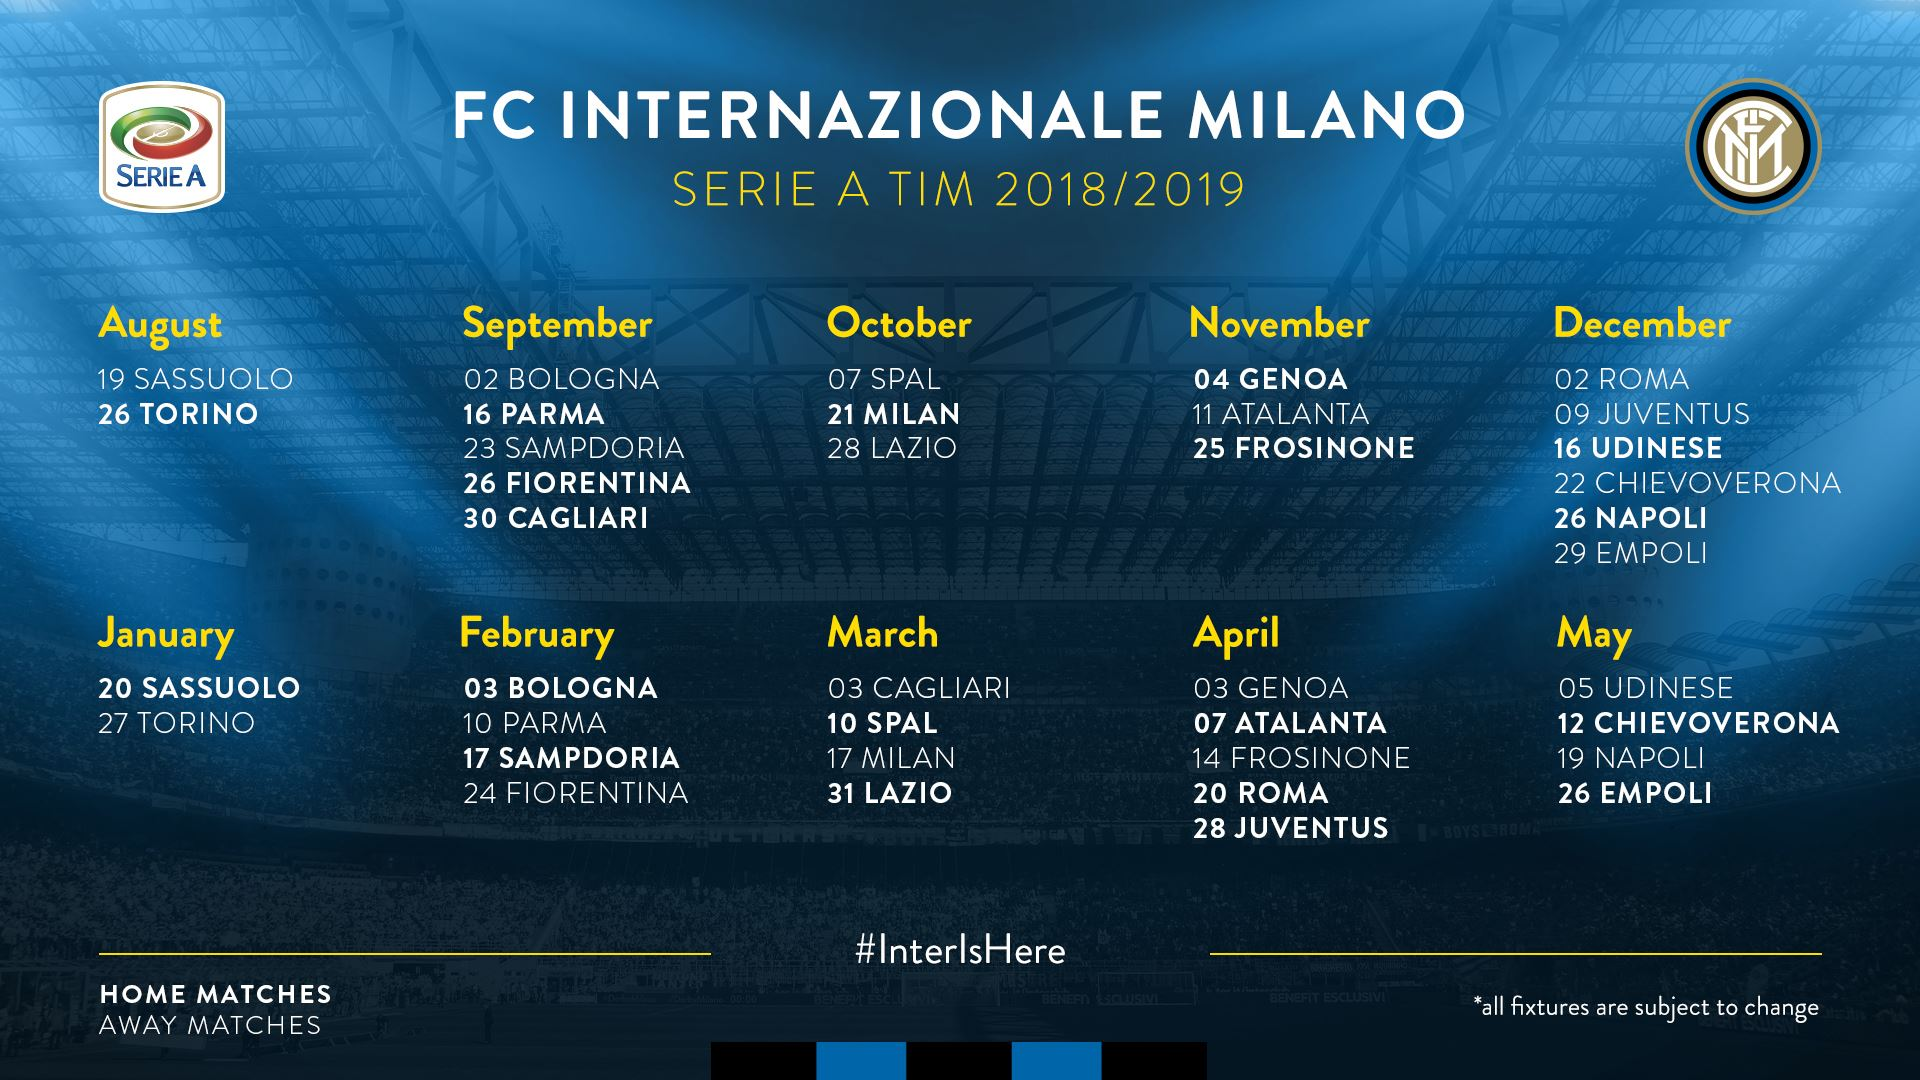 Calendario Partite Juve 2019.Il Calendario Dell Inter Partita Dopo Partita Notizie Inter